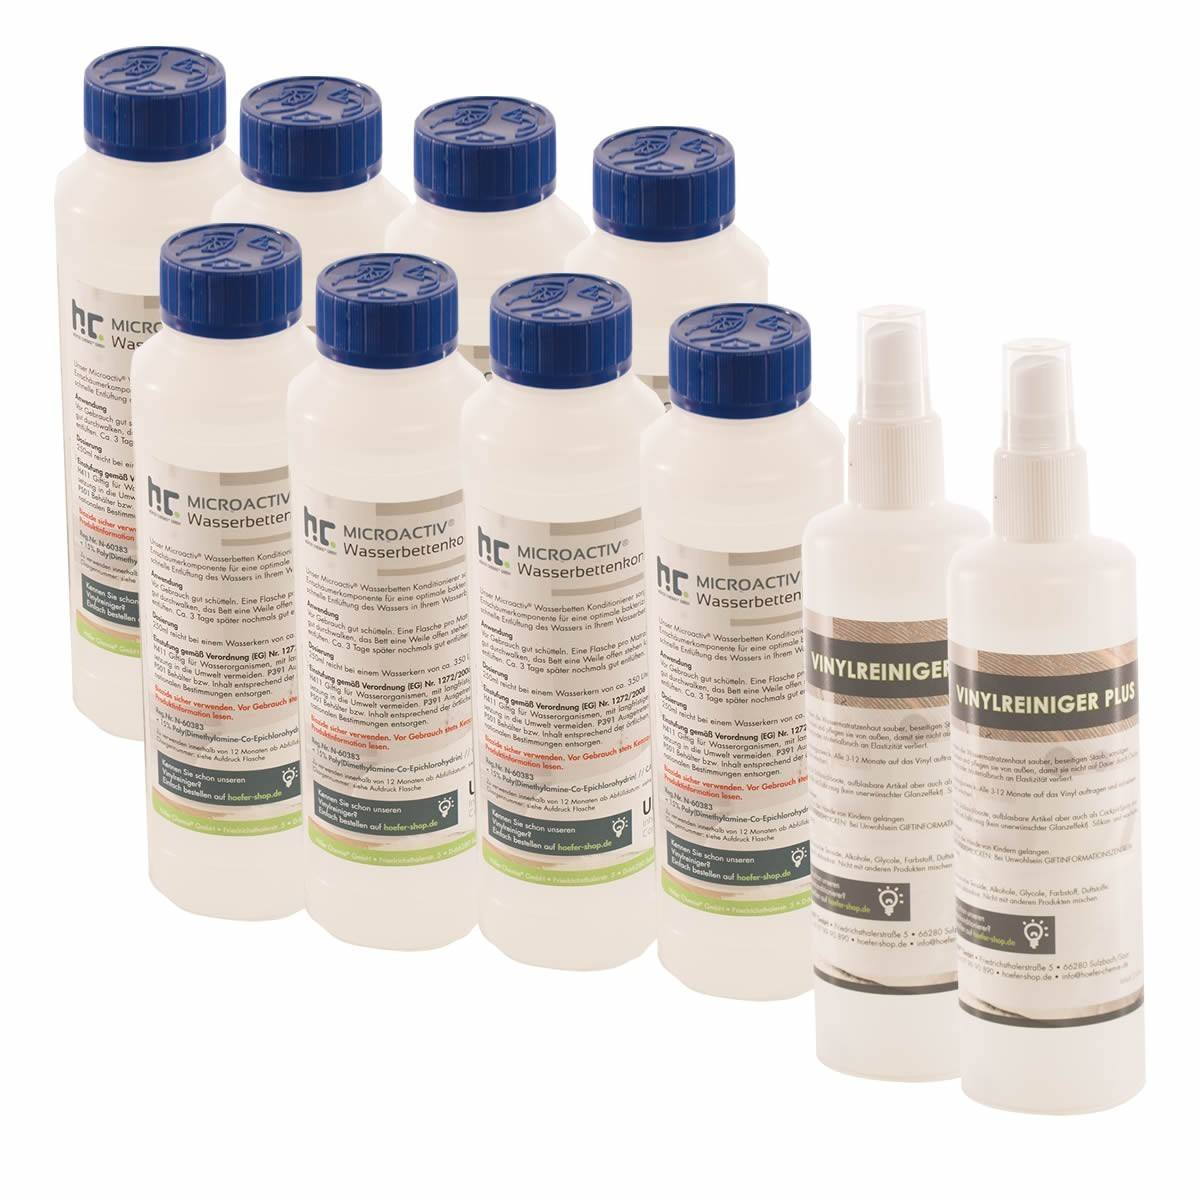 8 x 250 ml Konditionier + 2 x 250 ml Vinylreiniger